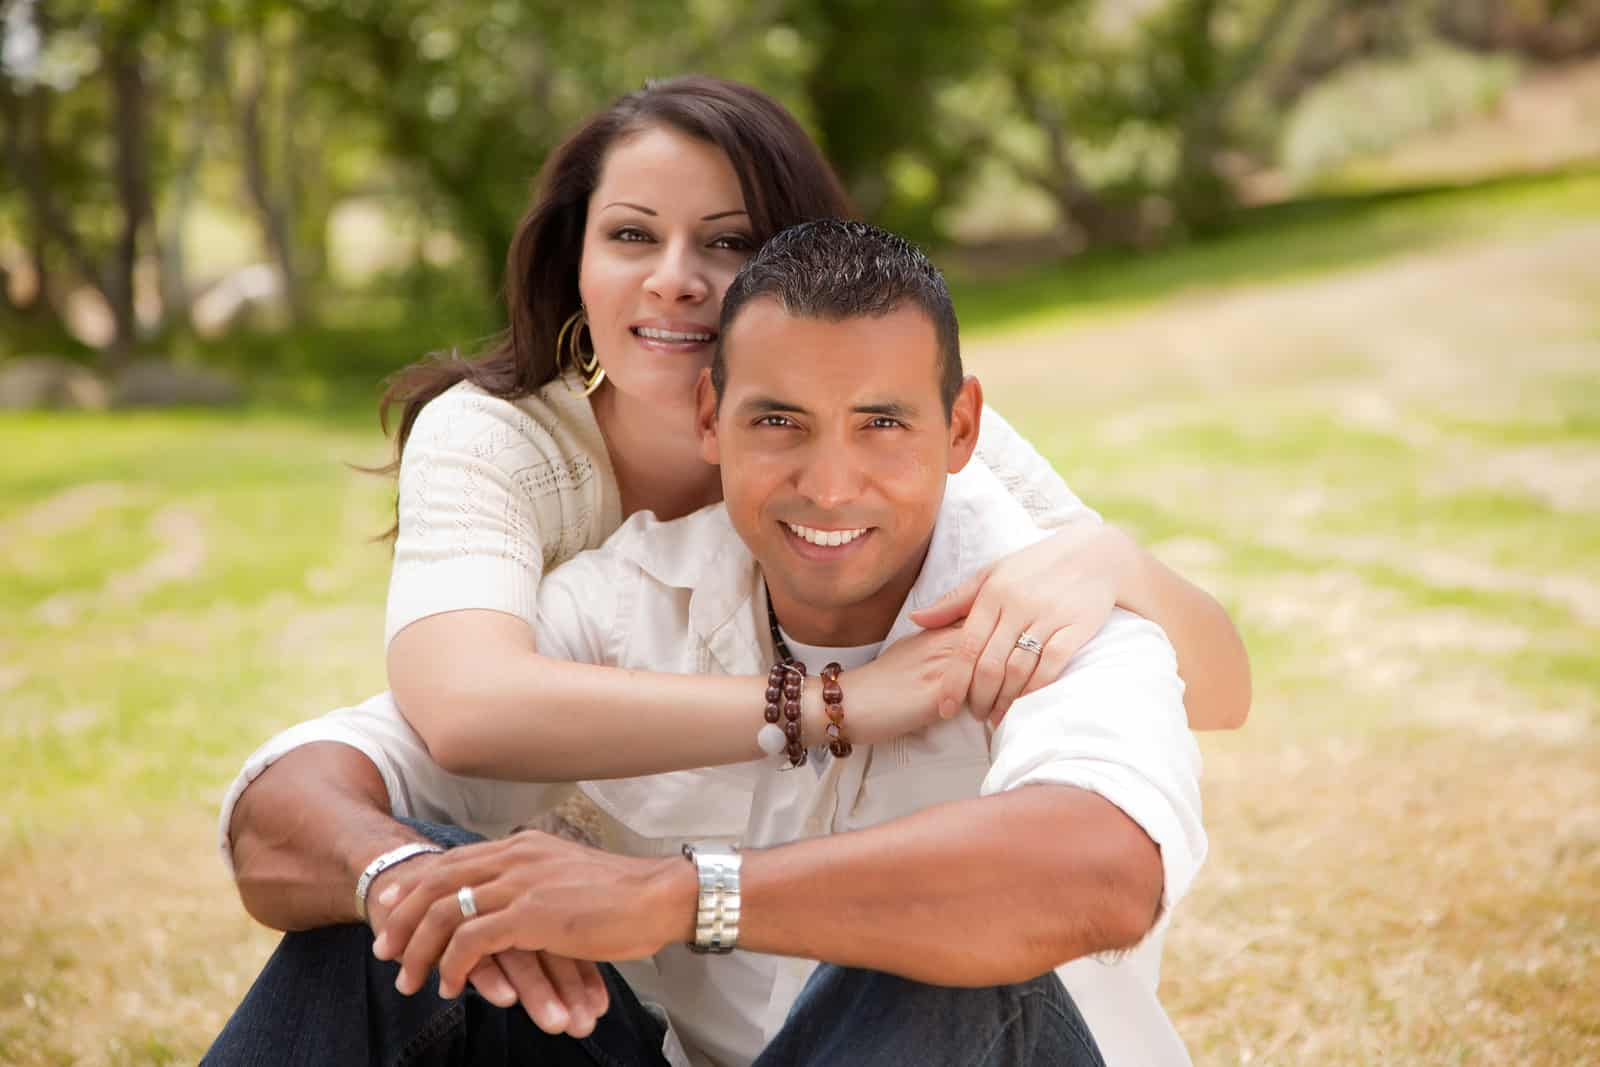 medical professional dating sites